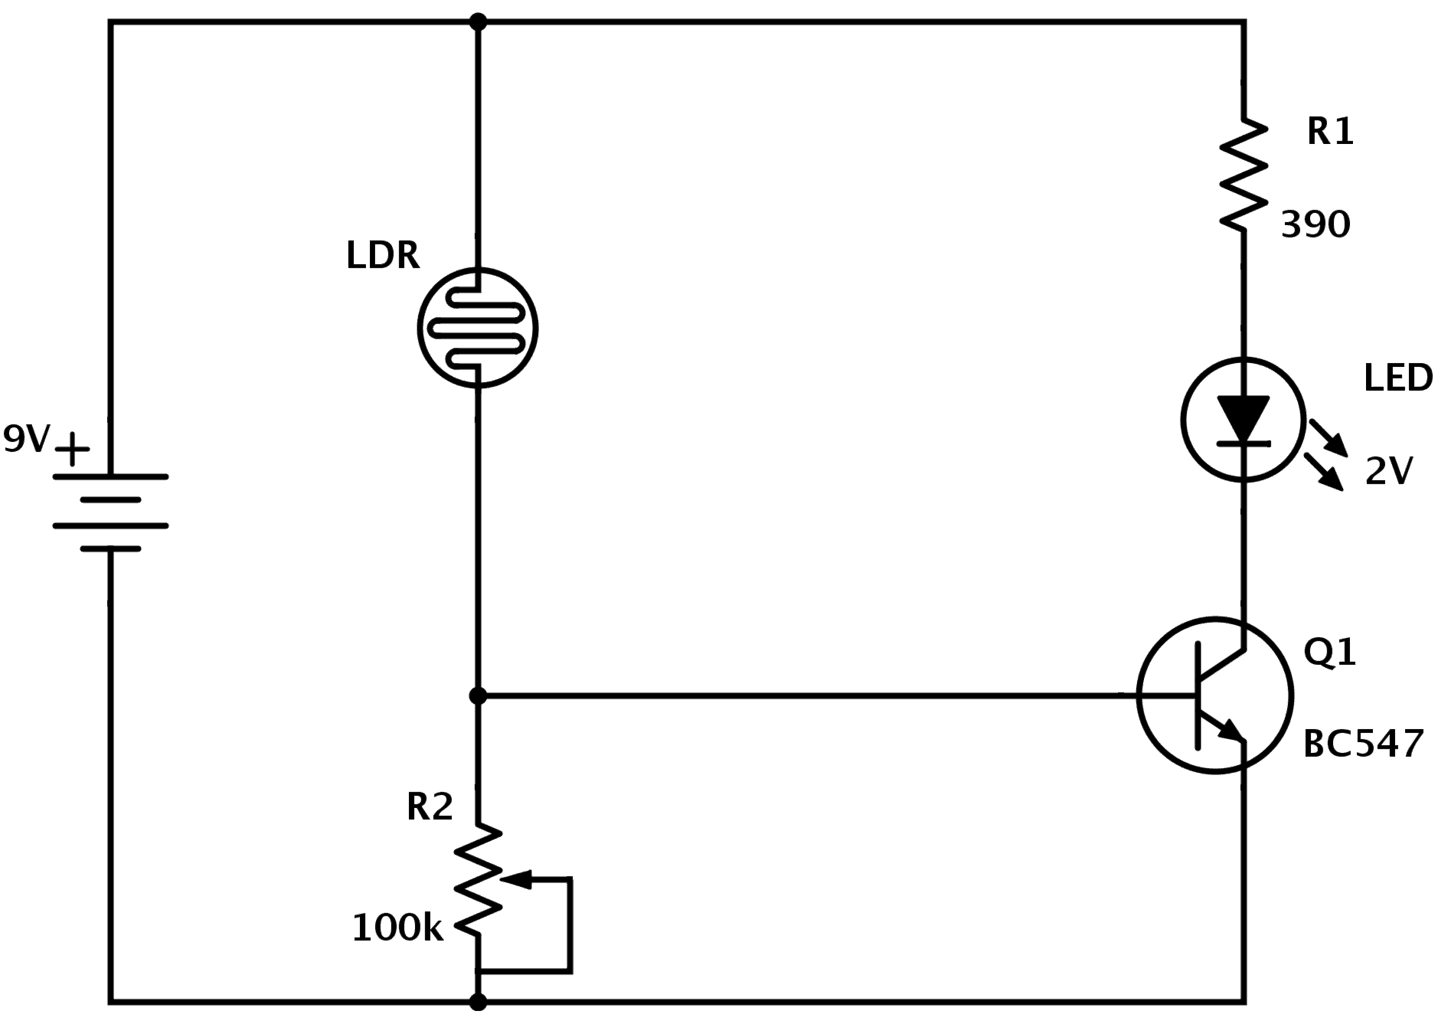 LDR circuit improved circuit diagram how to read and understand any schematic standard wiring diagram symbols at gsmx.co